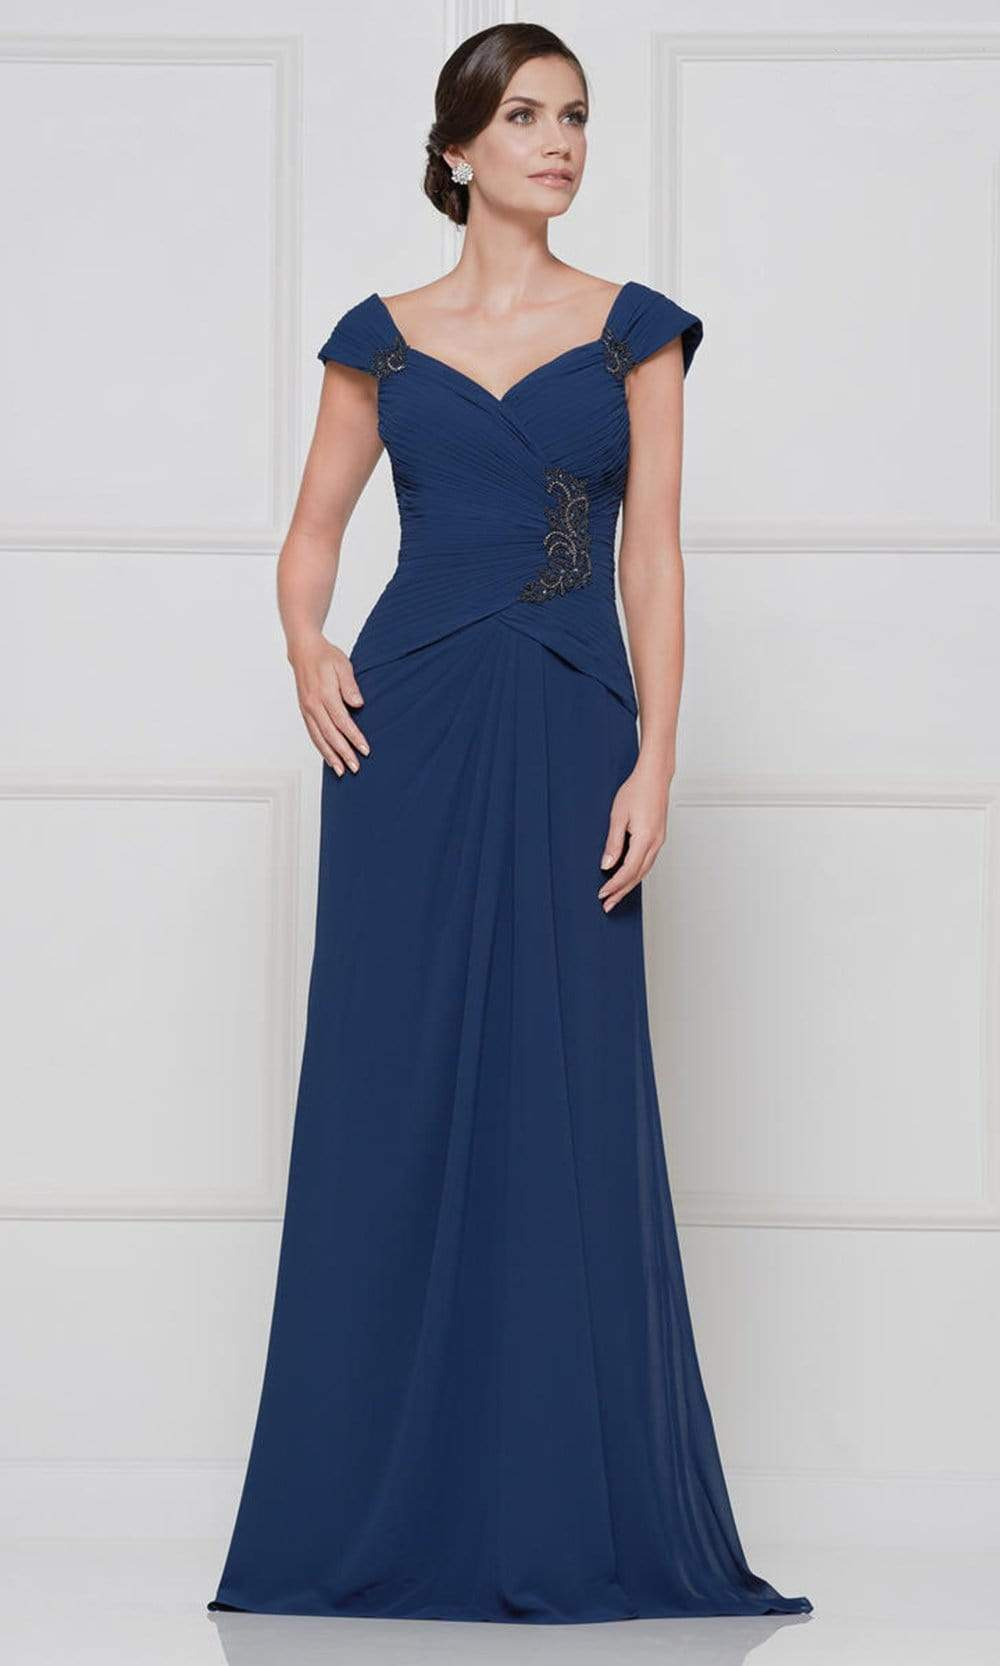 Rina Di Montella - RD2633 Embroidered V Neck Sheath Dress Mother of the Bride Dresses 4 / Navy